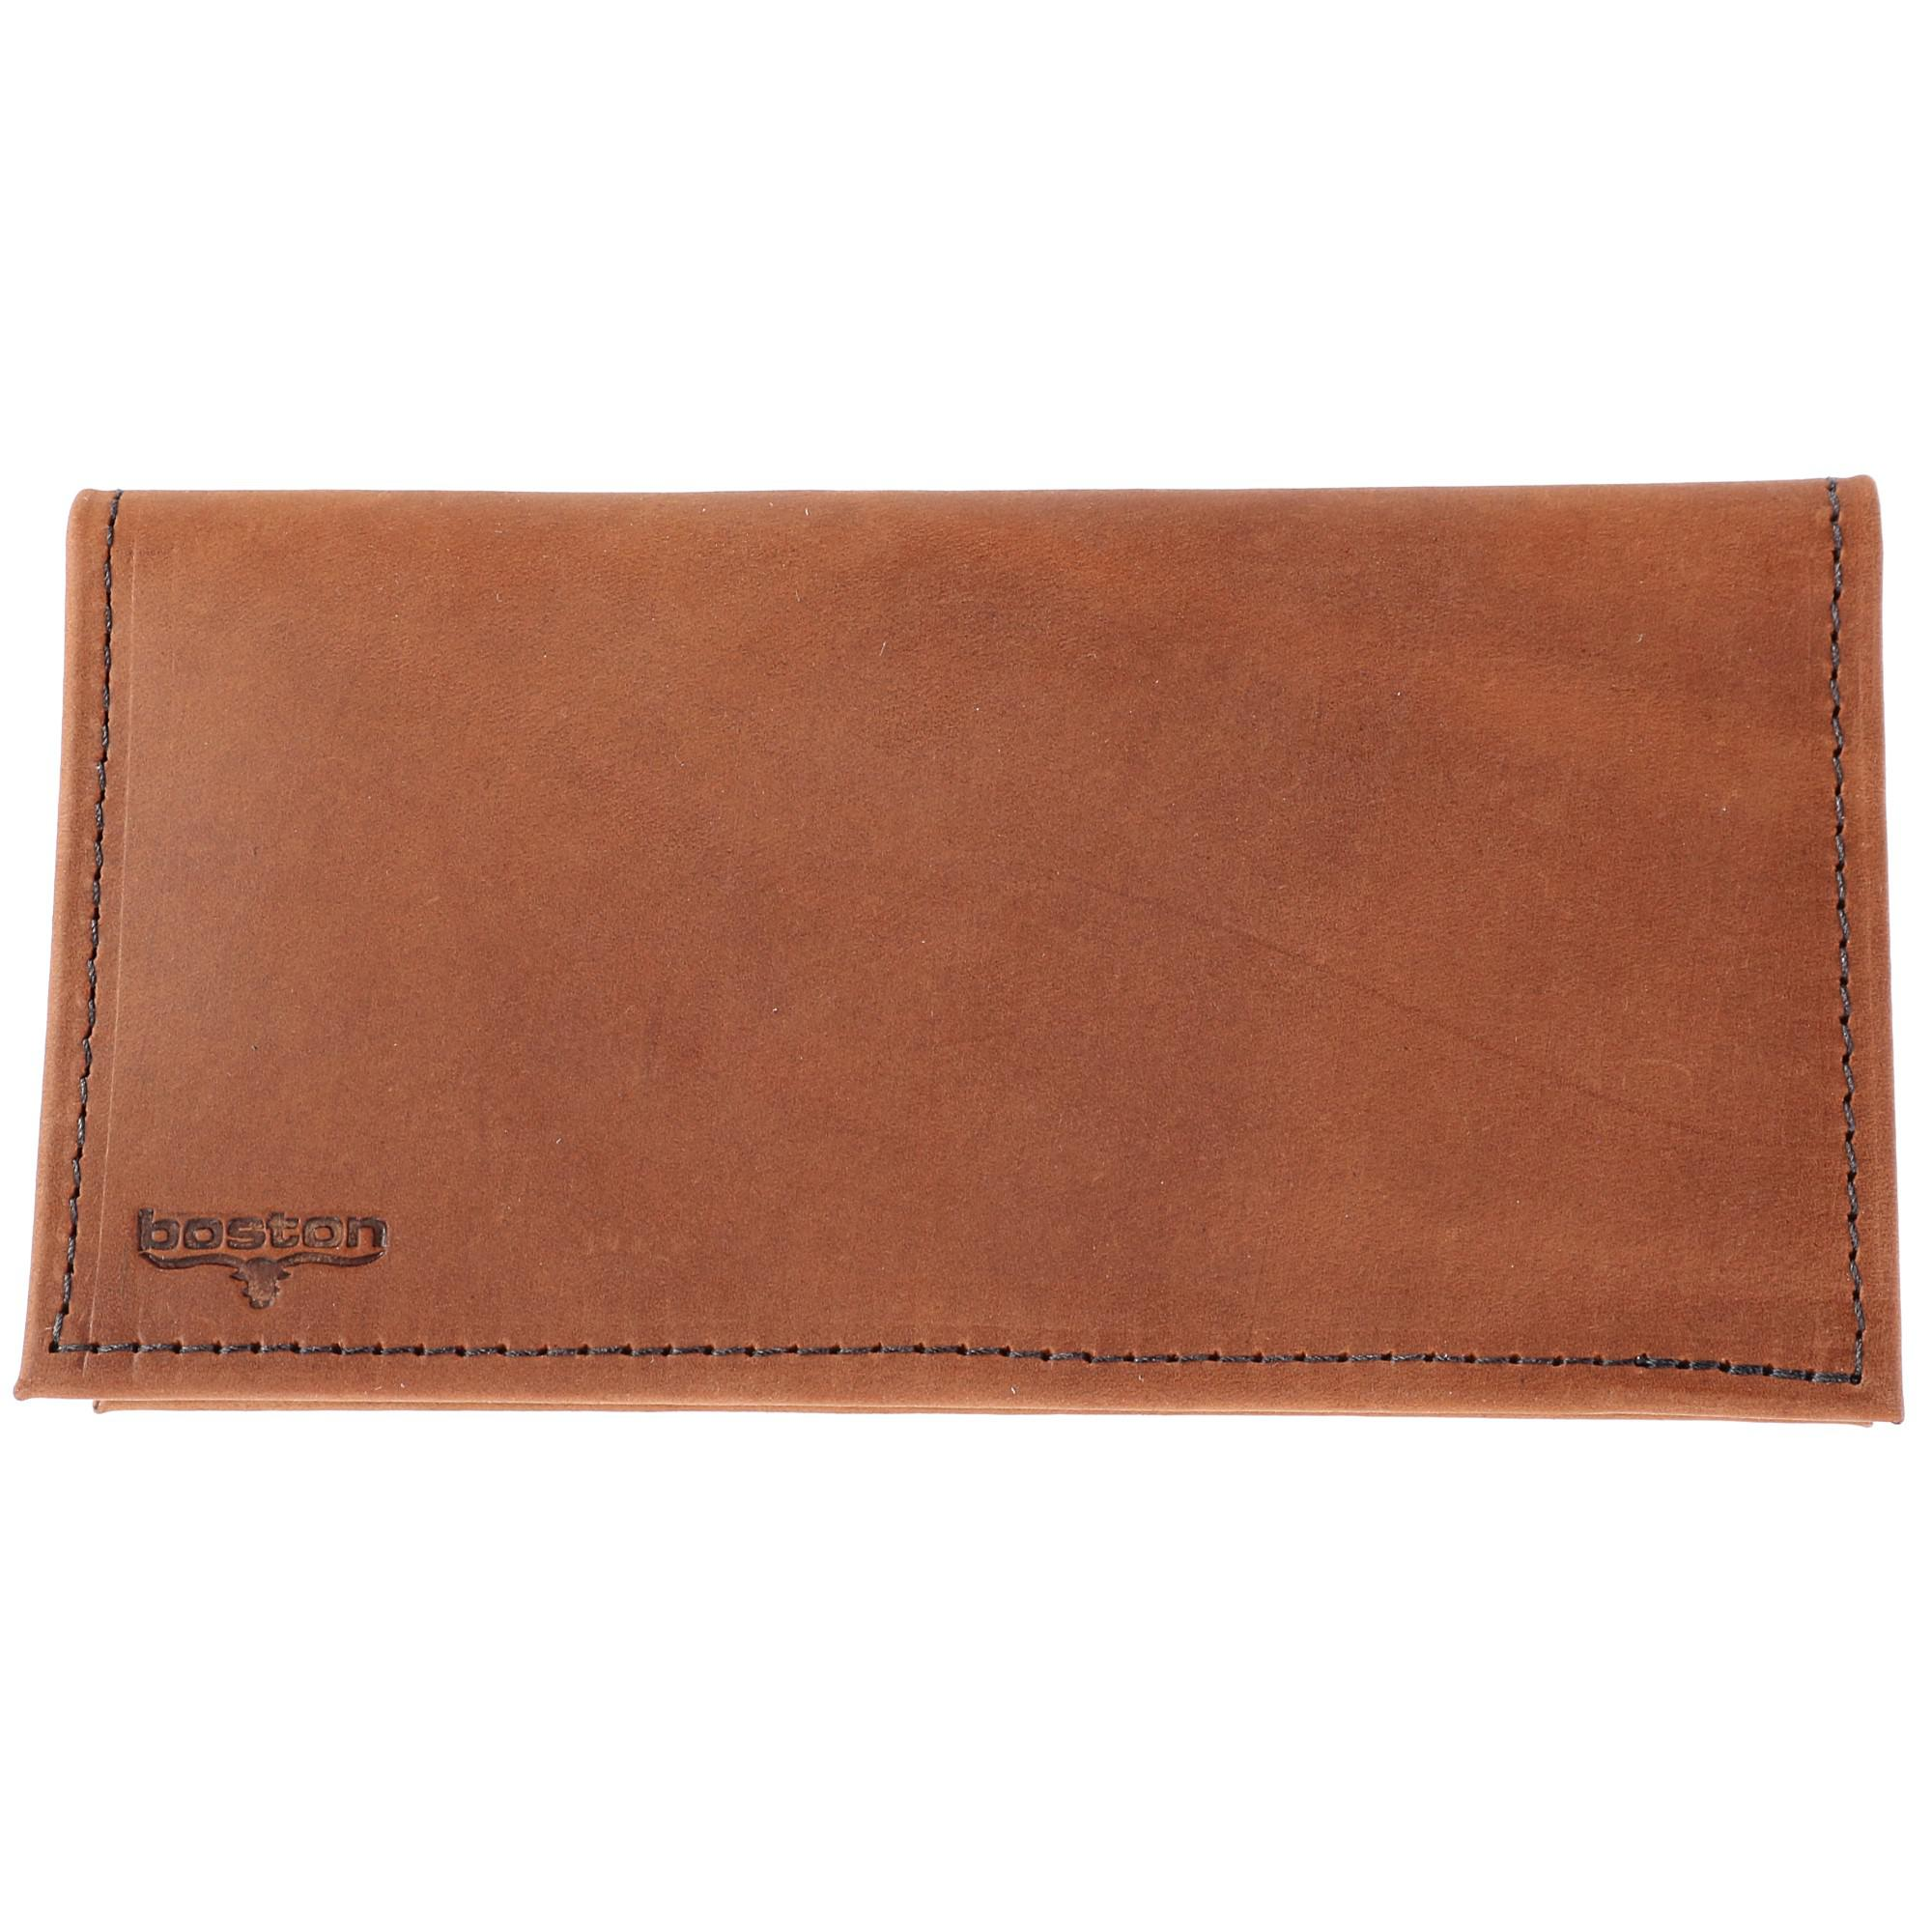 Boston Leather Multi Leather Checkbook Cover Set (Pack of 3) - image 3 of 6